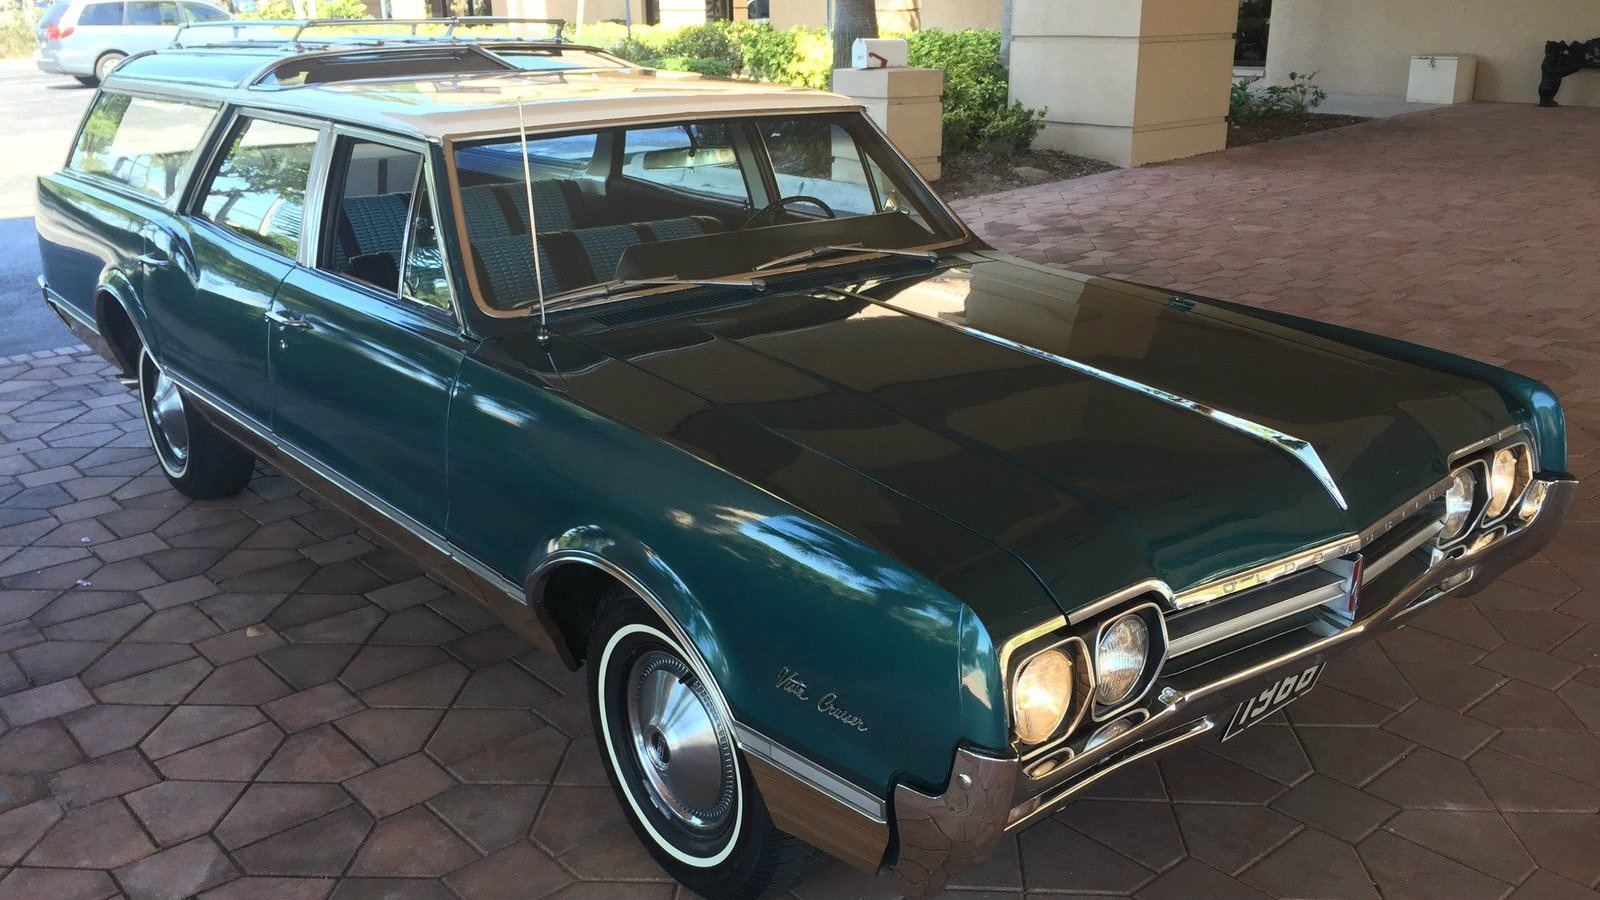 Where Are They Coming From 1966 Olds Vista Cruiser